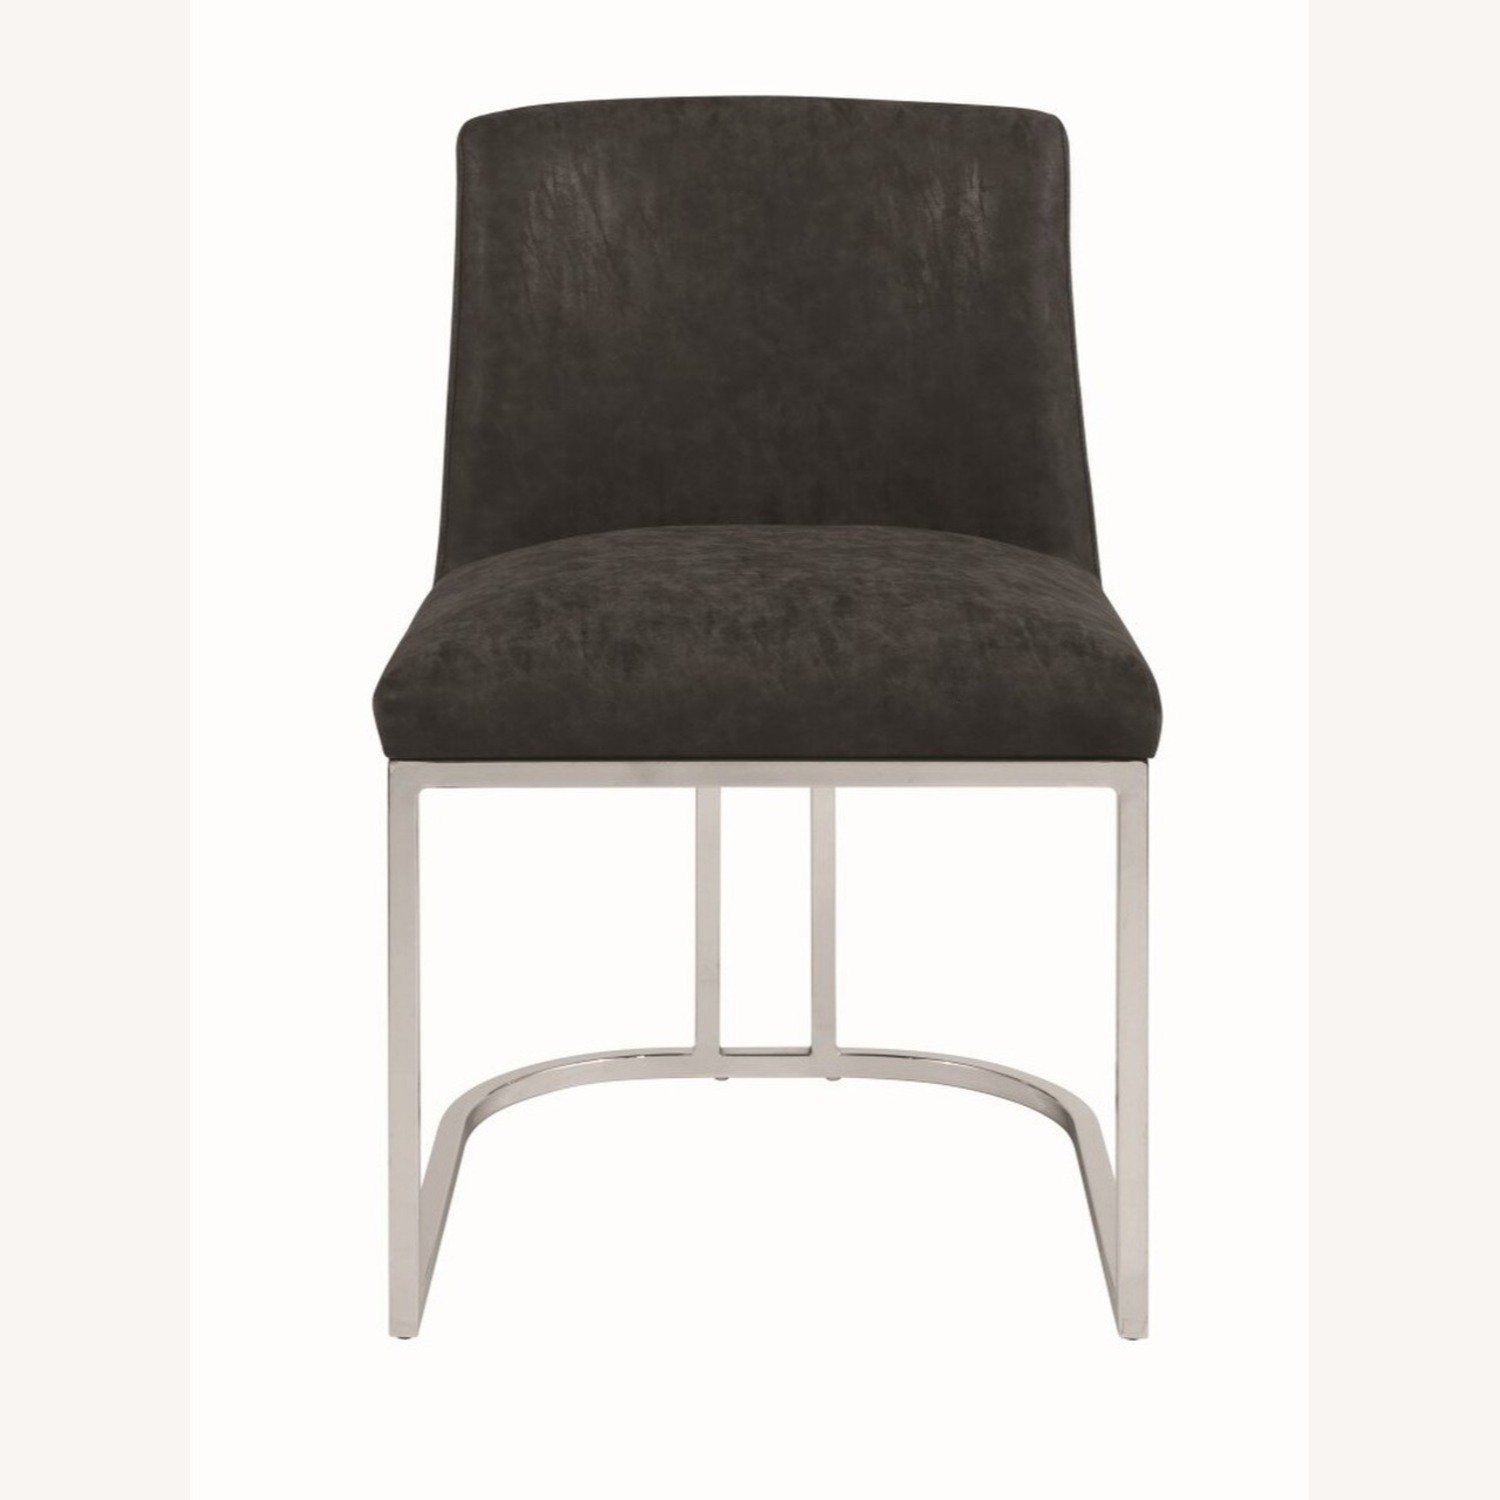 Modern Dining Chair In Black Leatherette - image-1